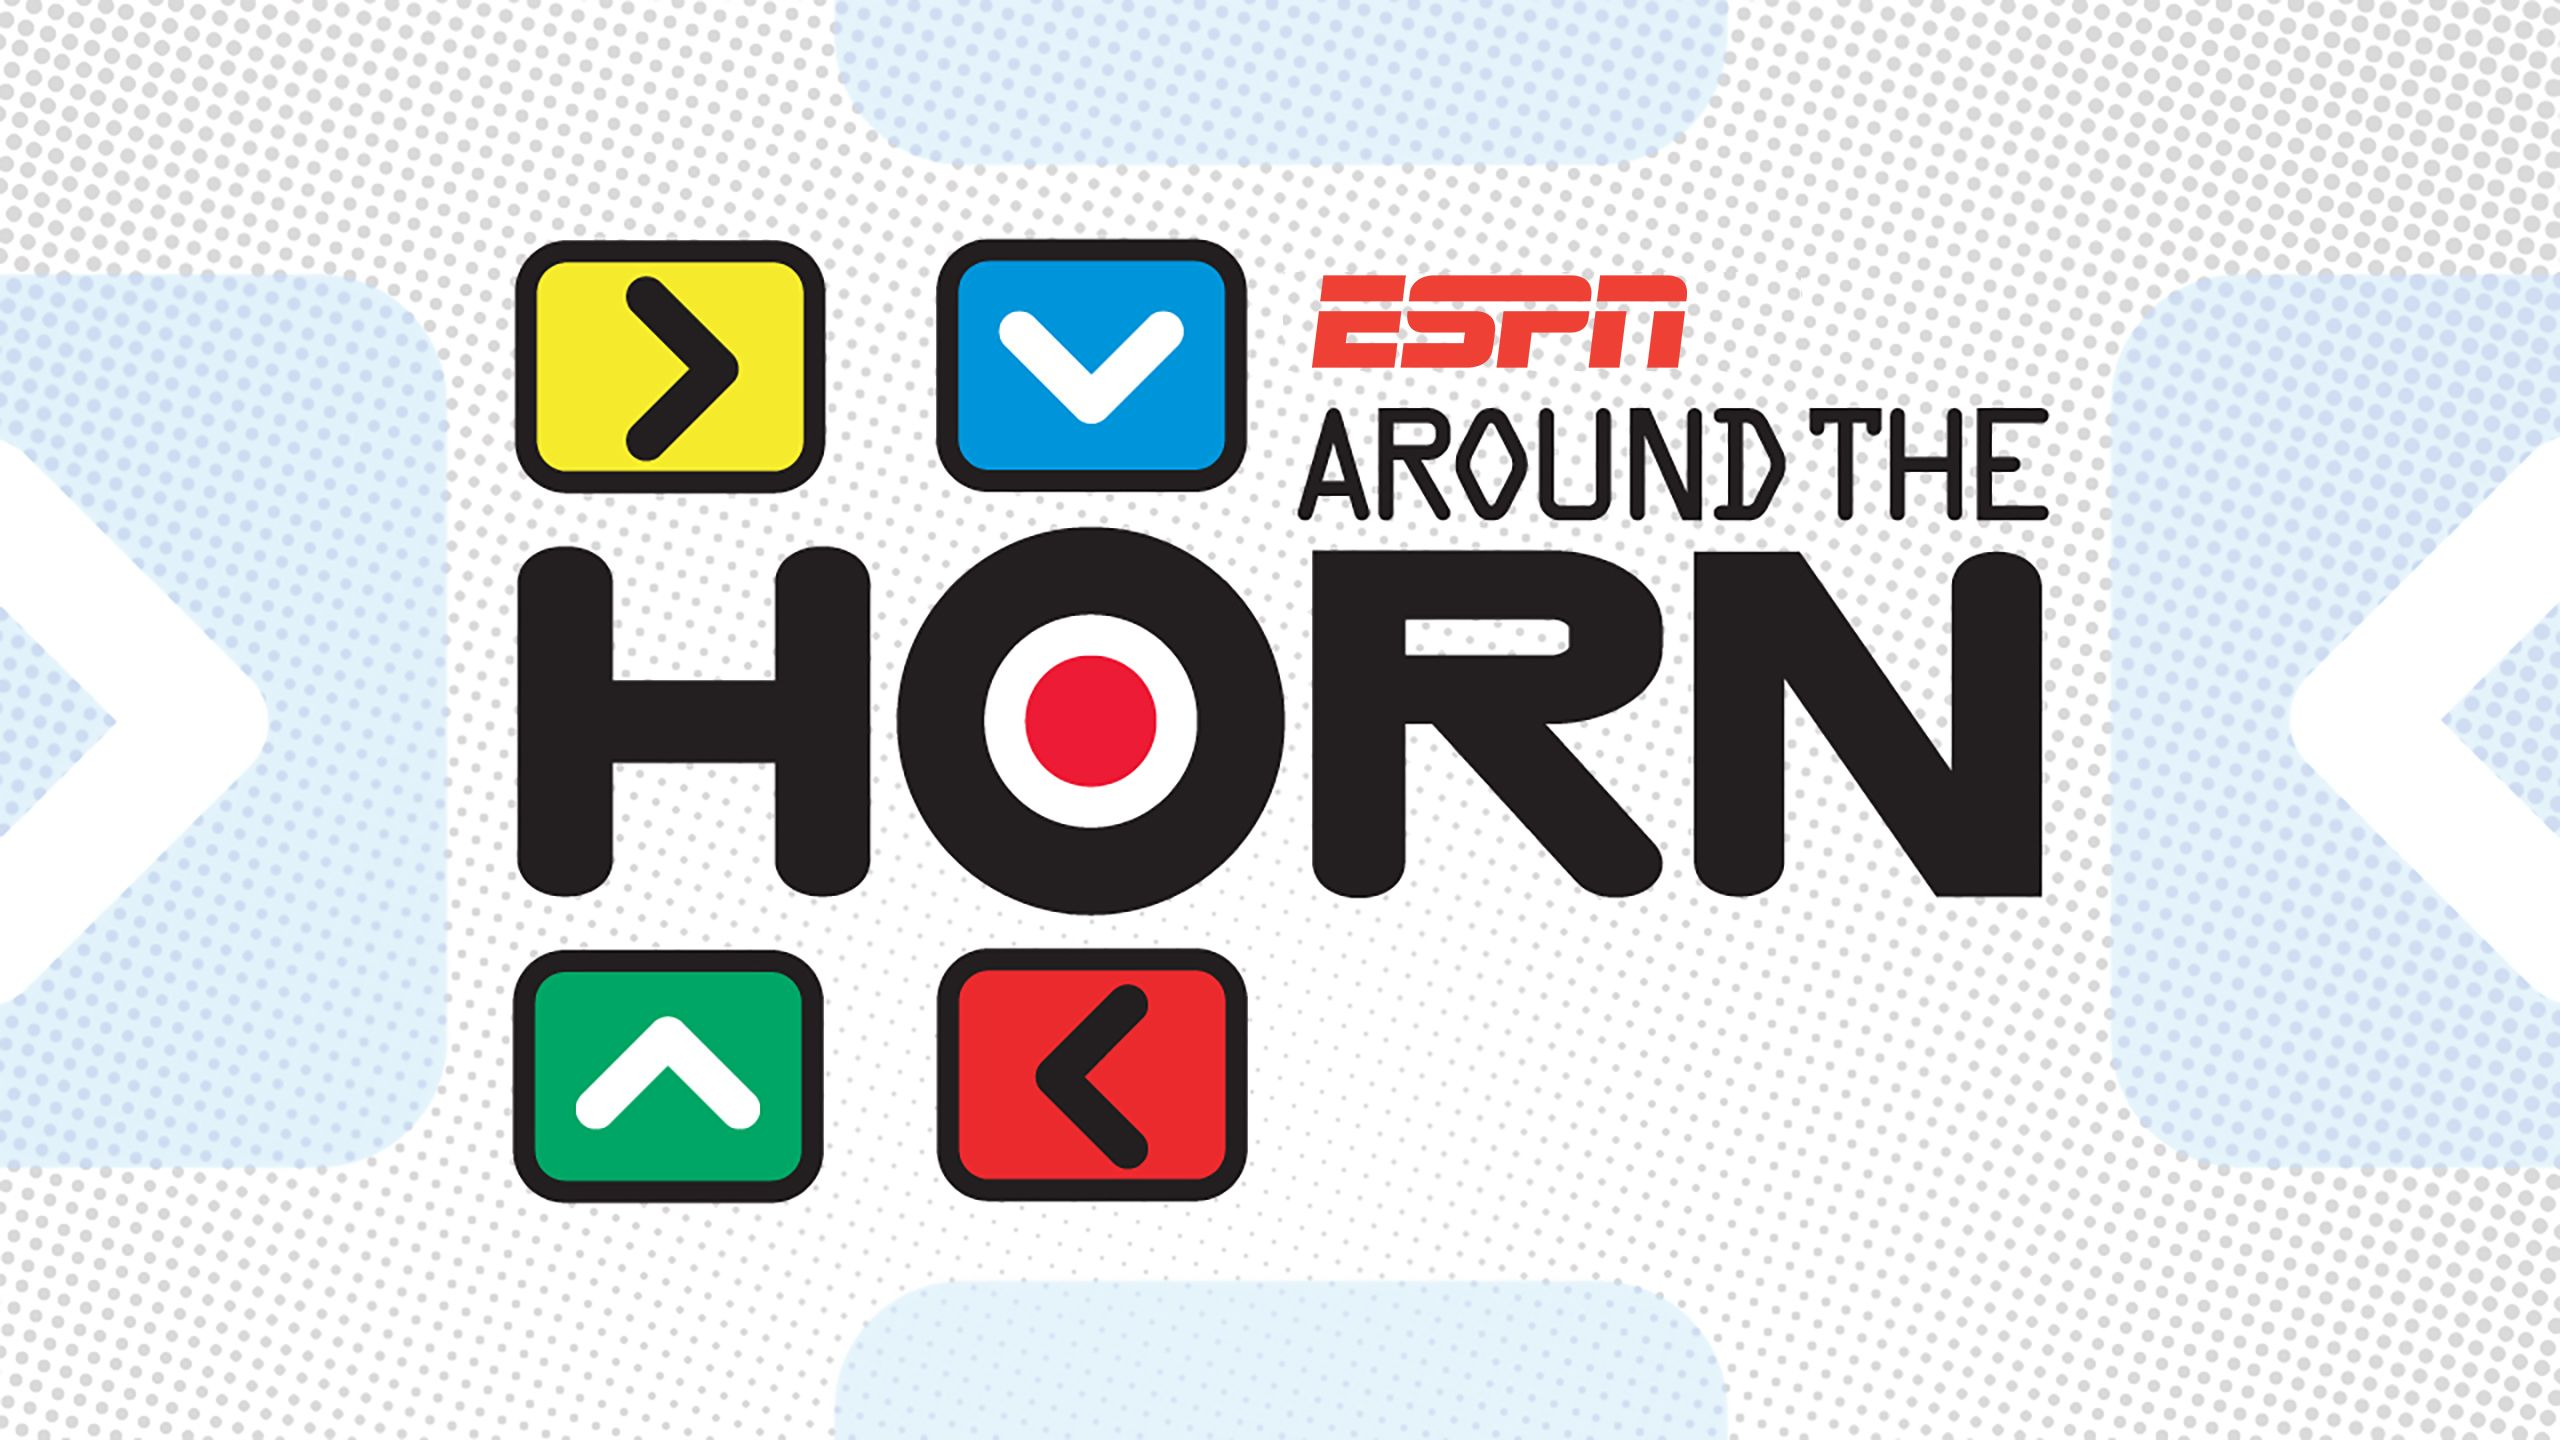 Fri, 10/20 - Around The Horn